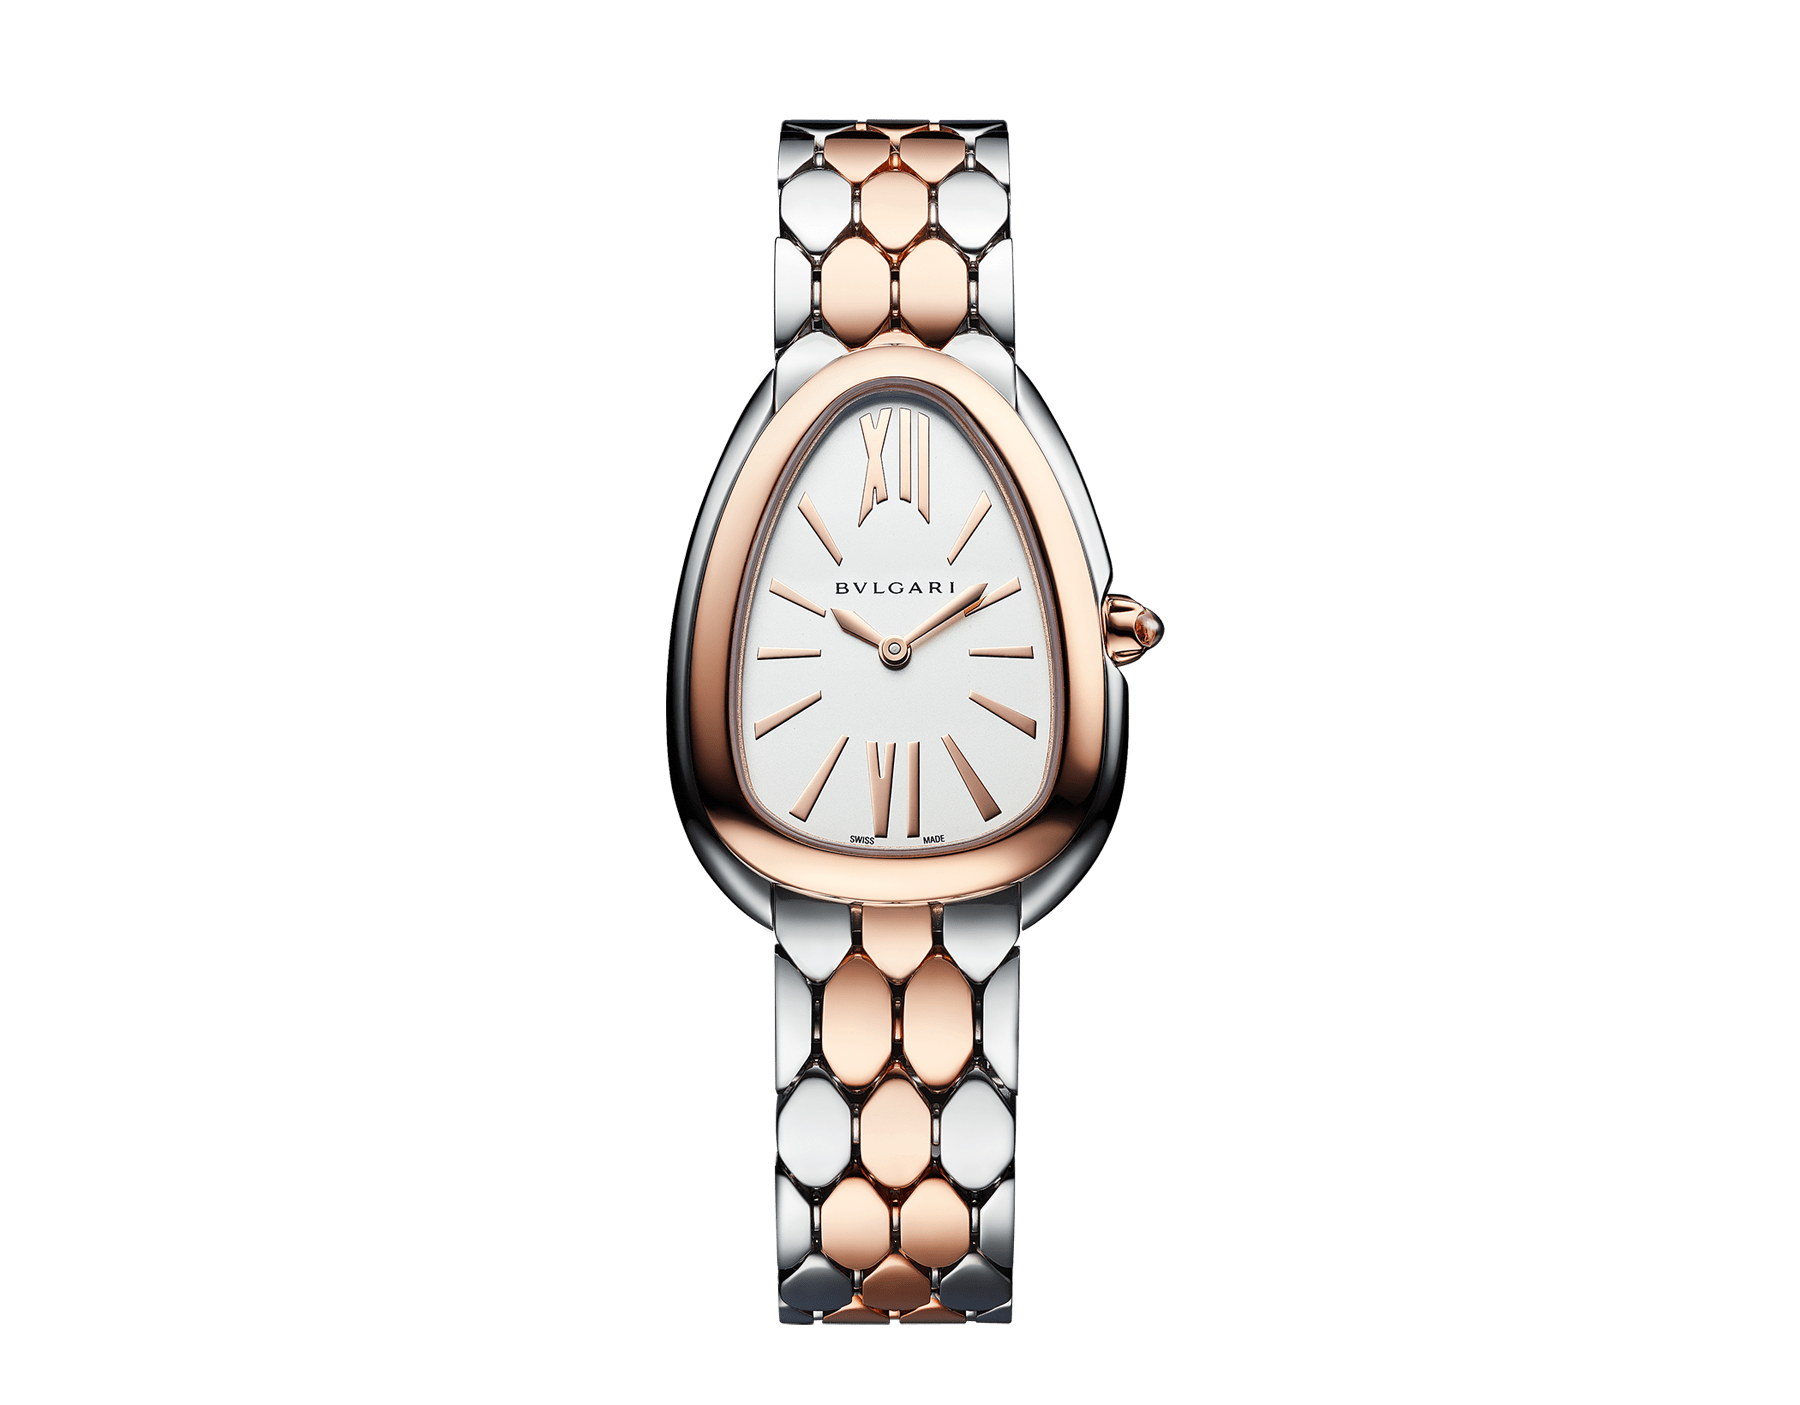 Serpenti Seduttori watch in stainless steel and 18 kt rose gold case and bracelet, with white silver opaline dial 103277 image 1